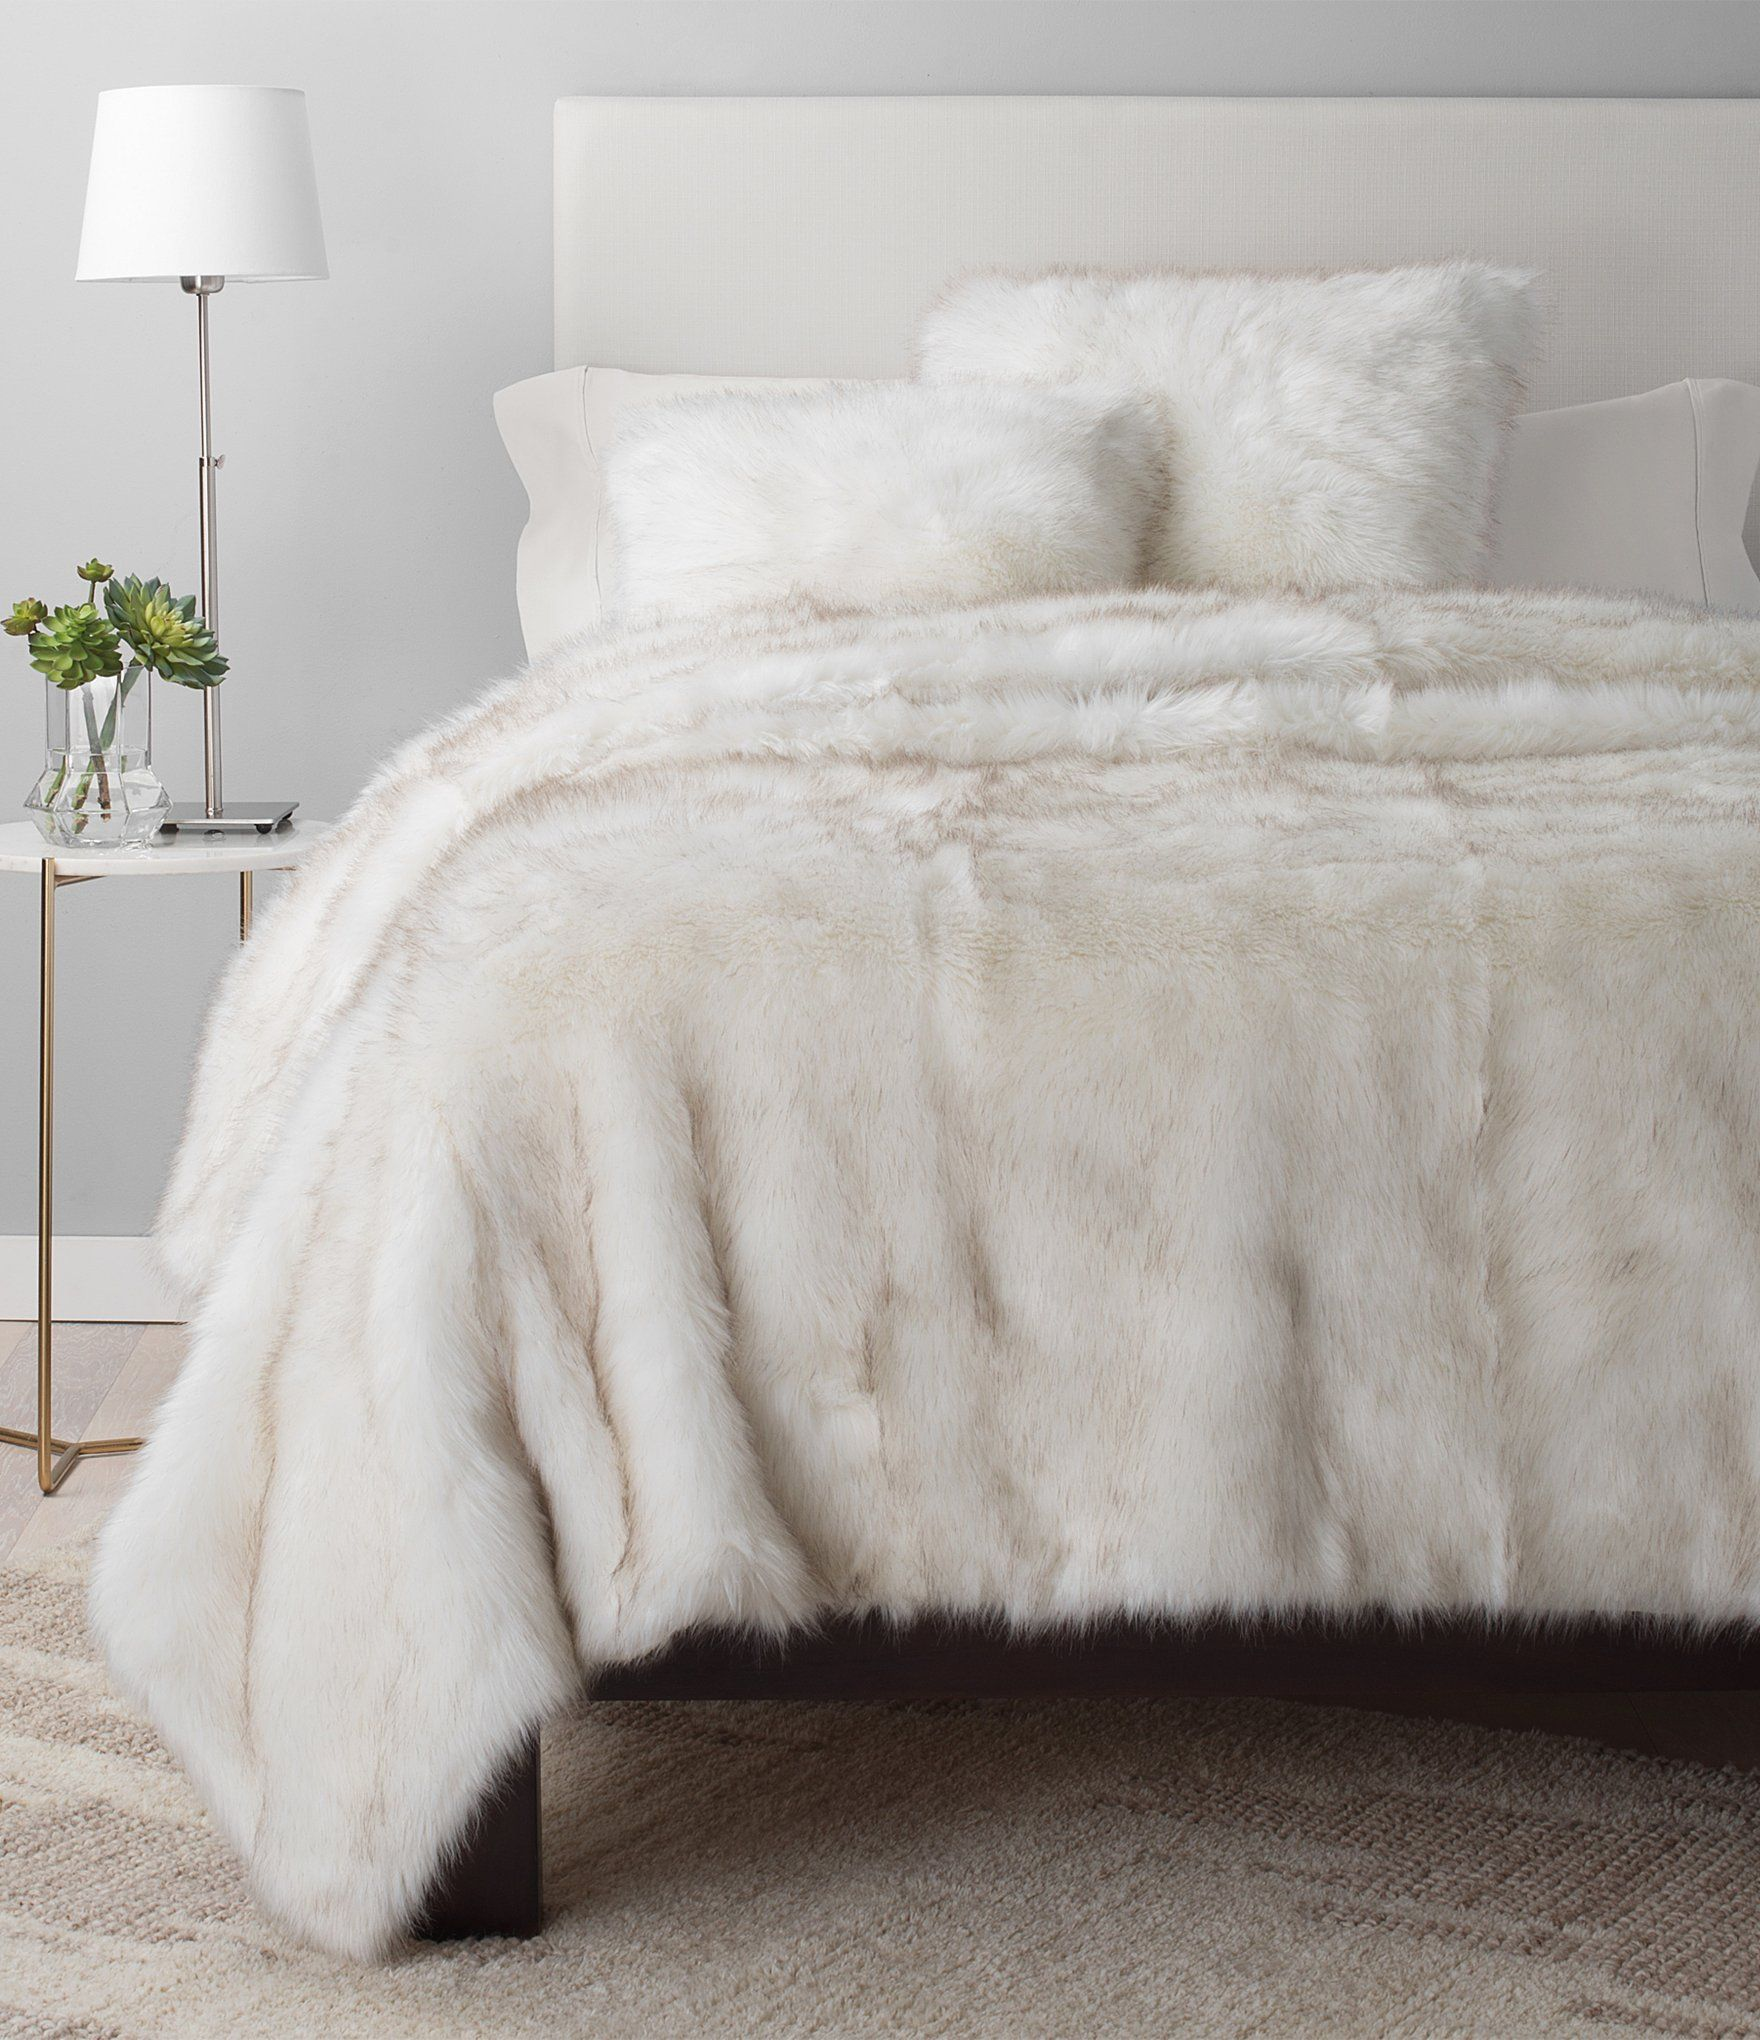 Ugg Blizzard Faux Fur Coverlet Dillards Comfortable Bedroom Fur Comforter Bedroom Bed Spreads